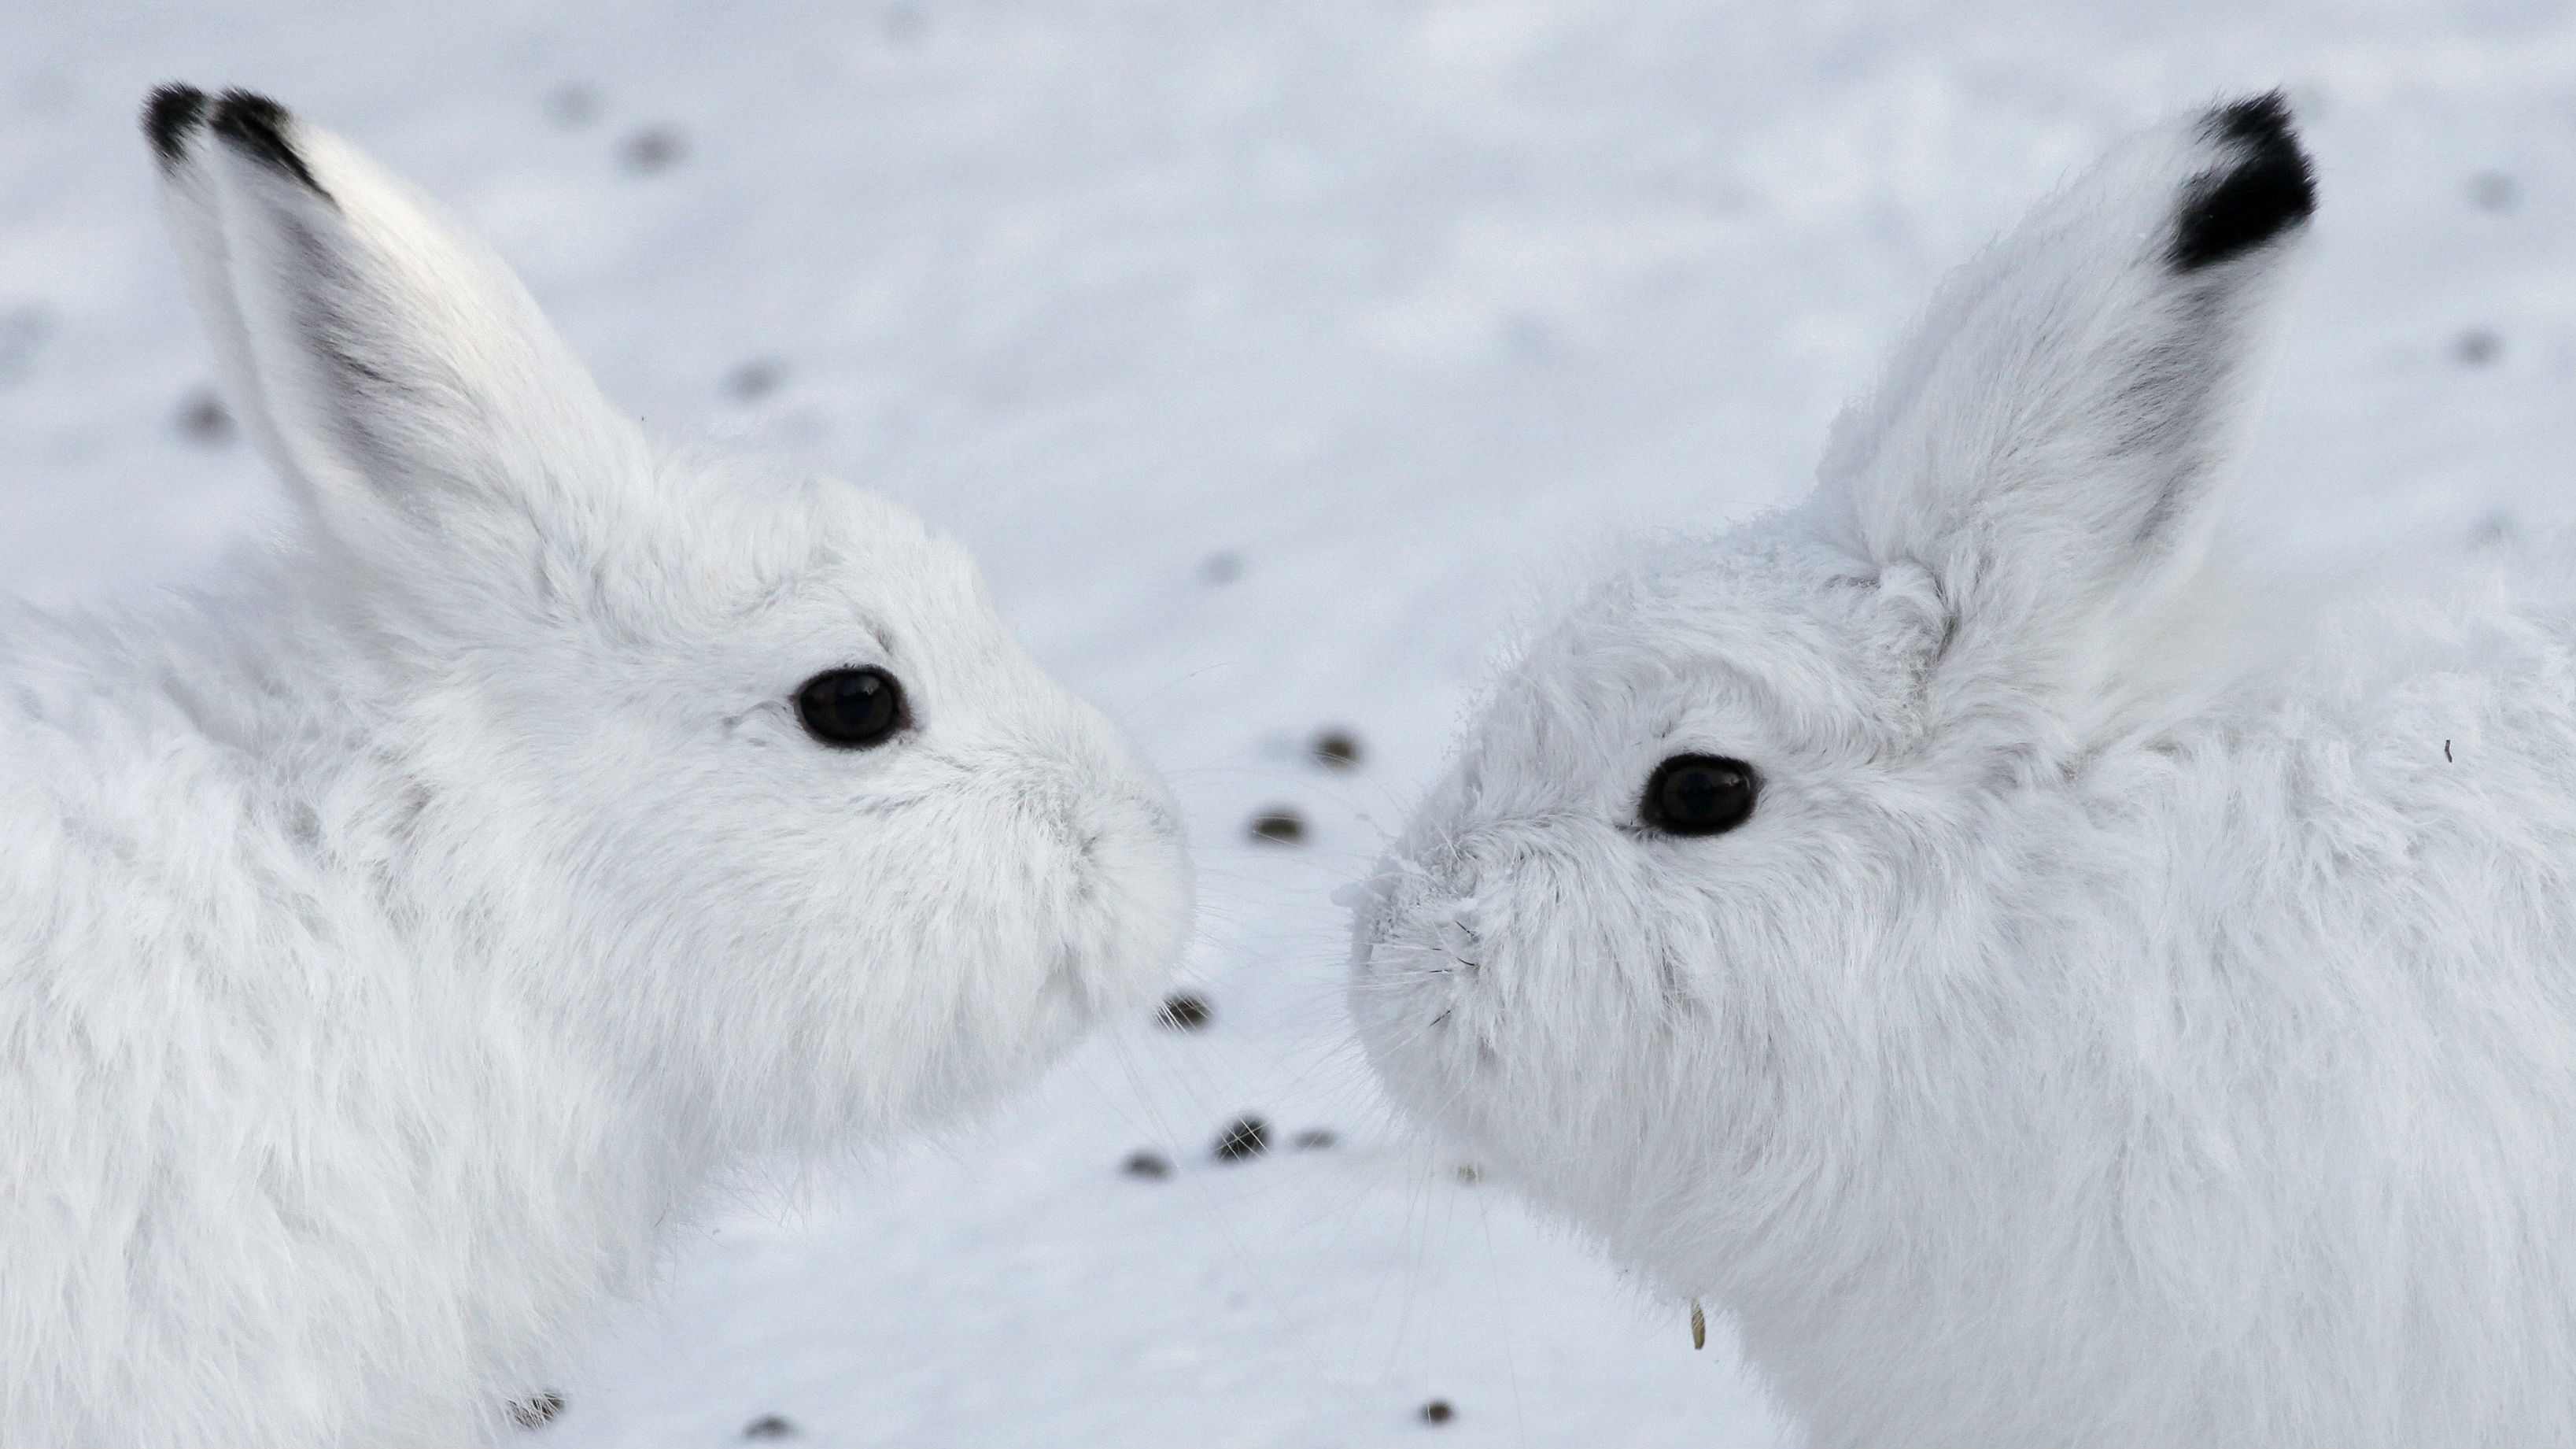 Two white hares about to kiss.